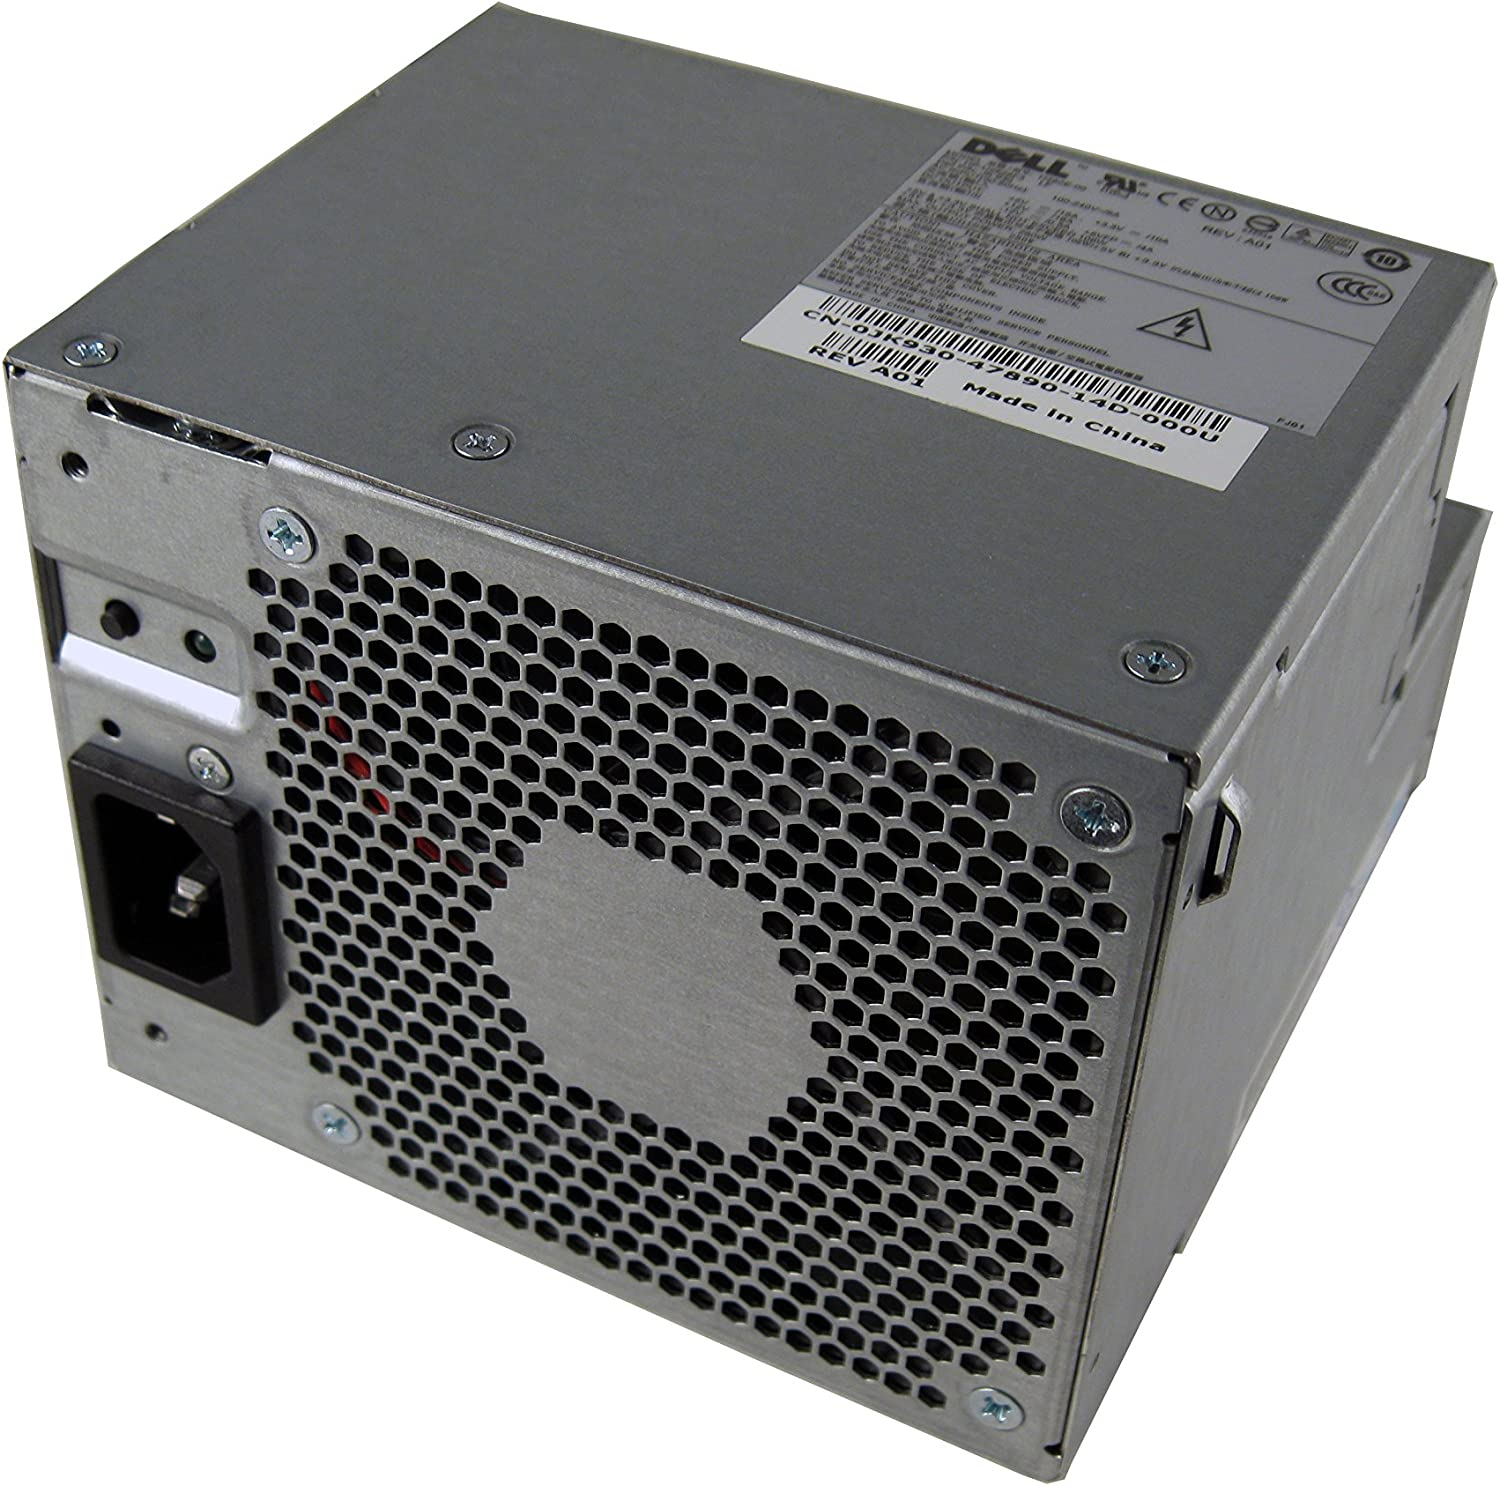 Genuine Dell Power Supply For Optiplex 330 360 740 745 755 Desktop System P/N: MM720 / WW109 / JK930